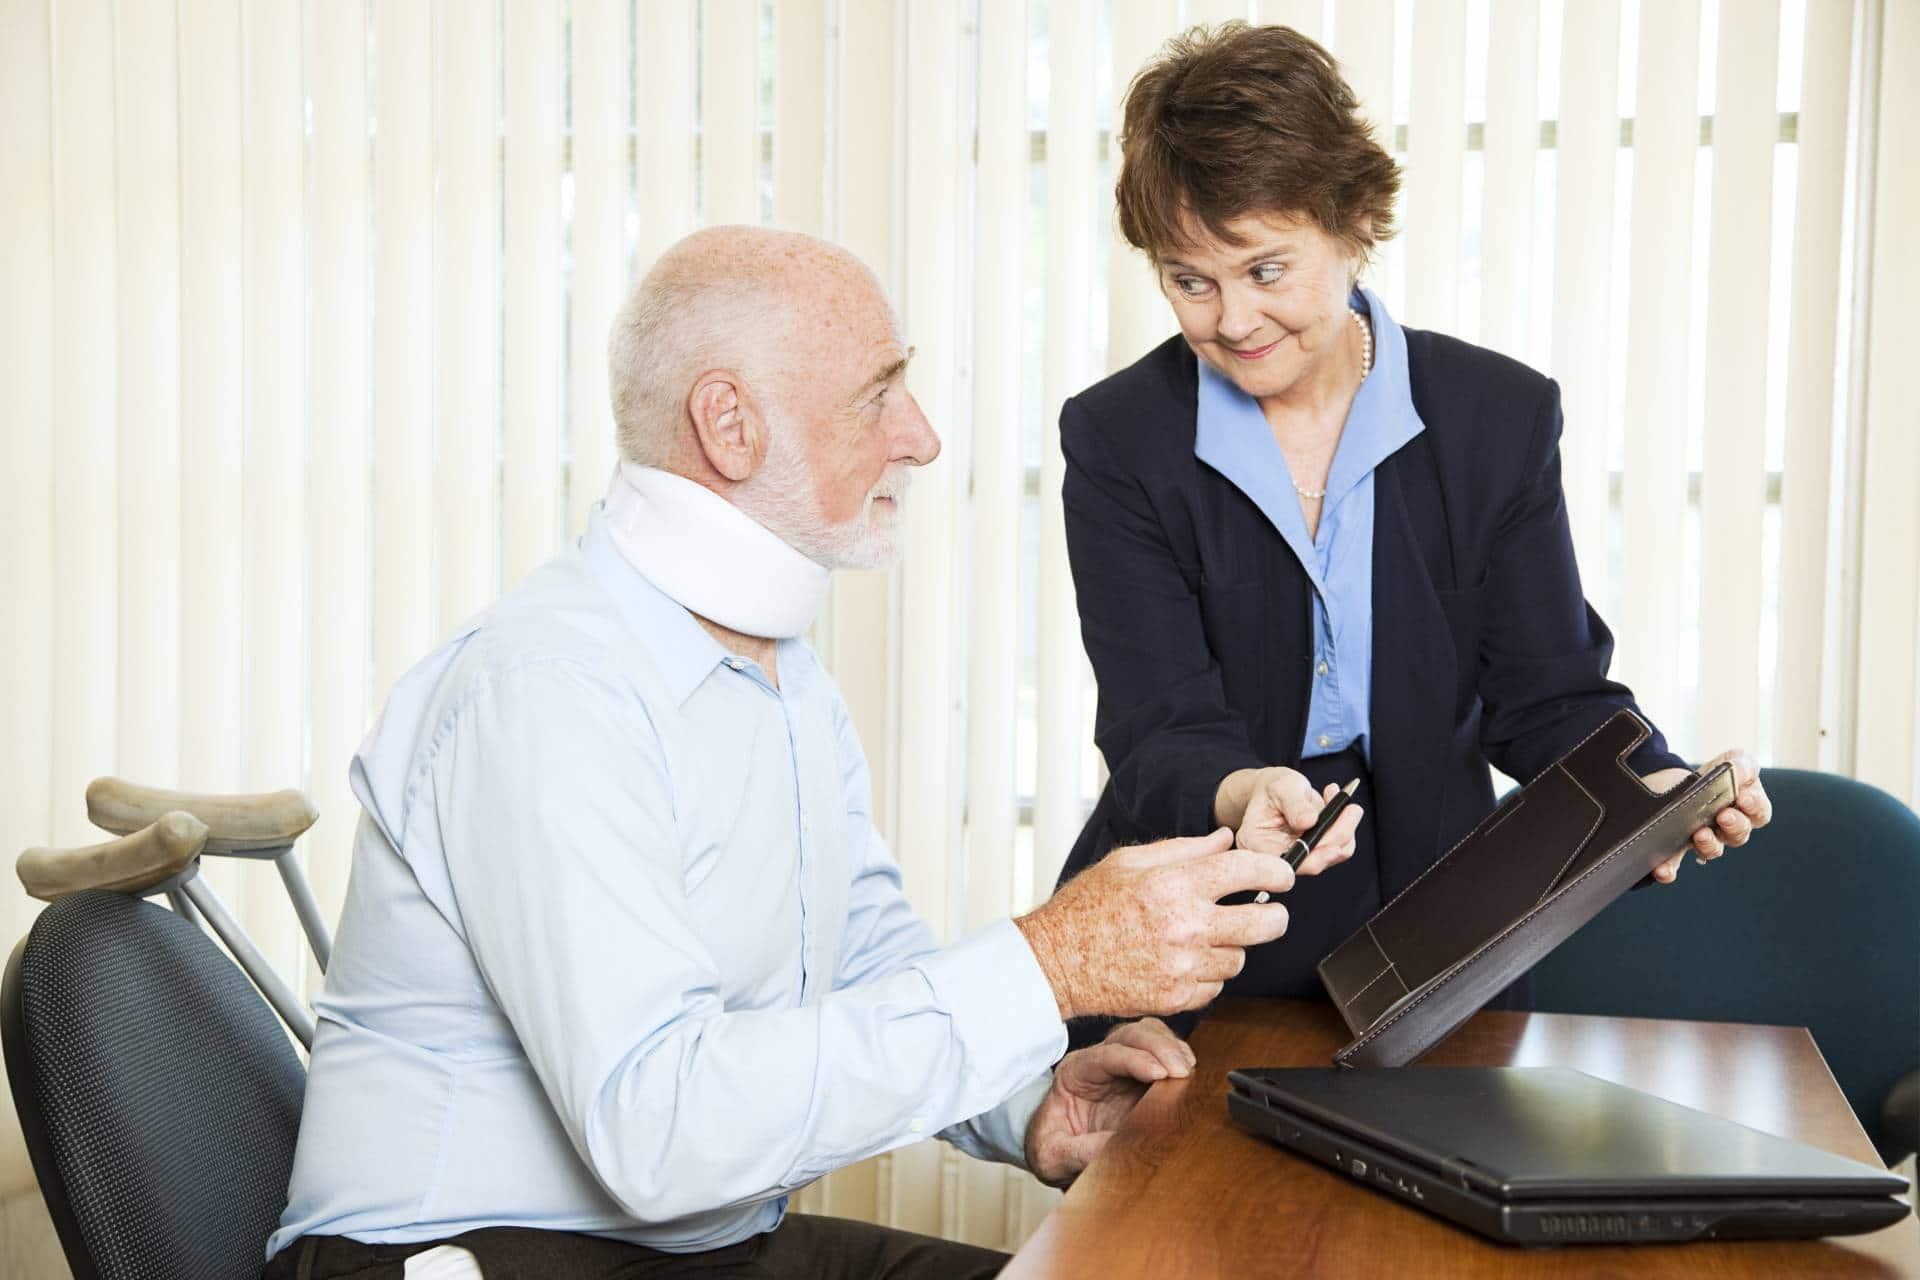 Schedule a free consultation with our personal injury lawyers.